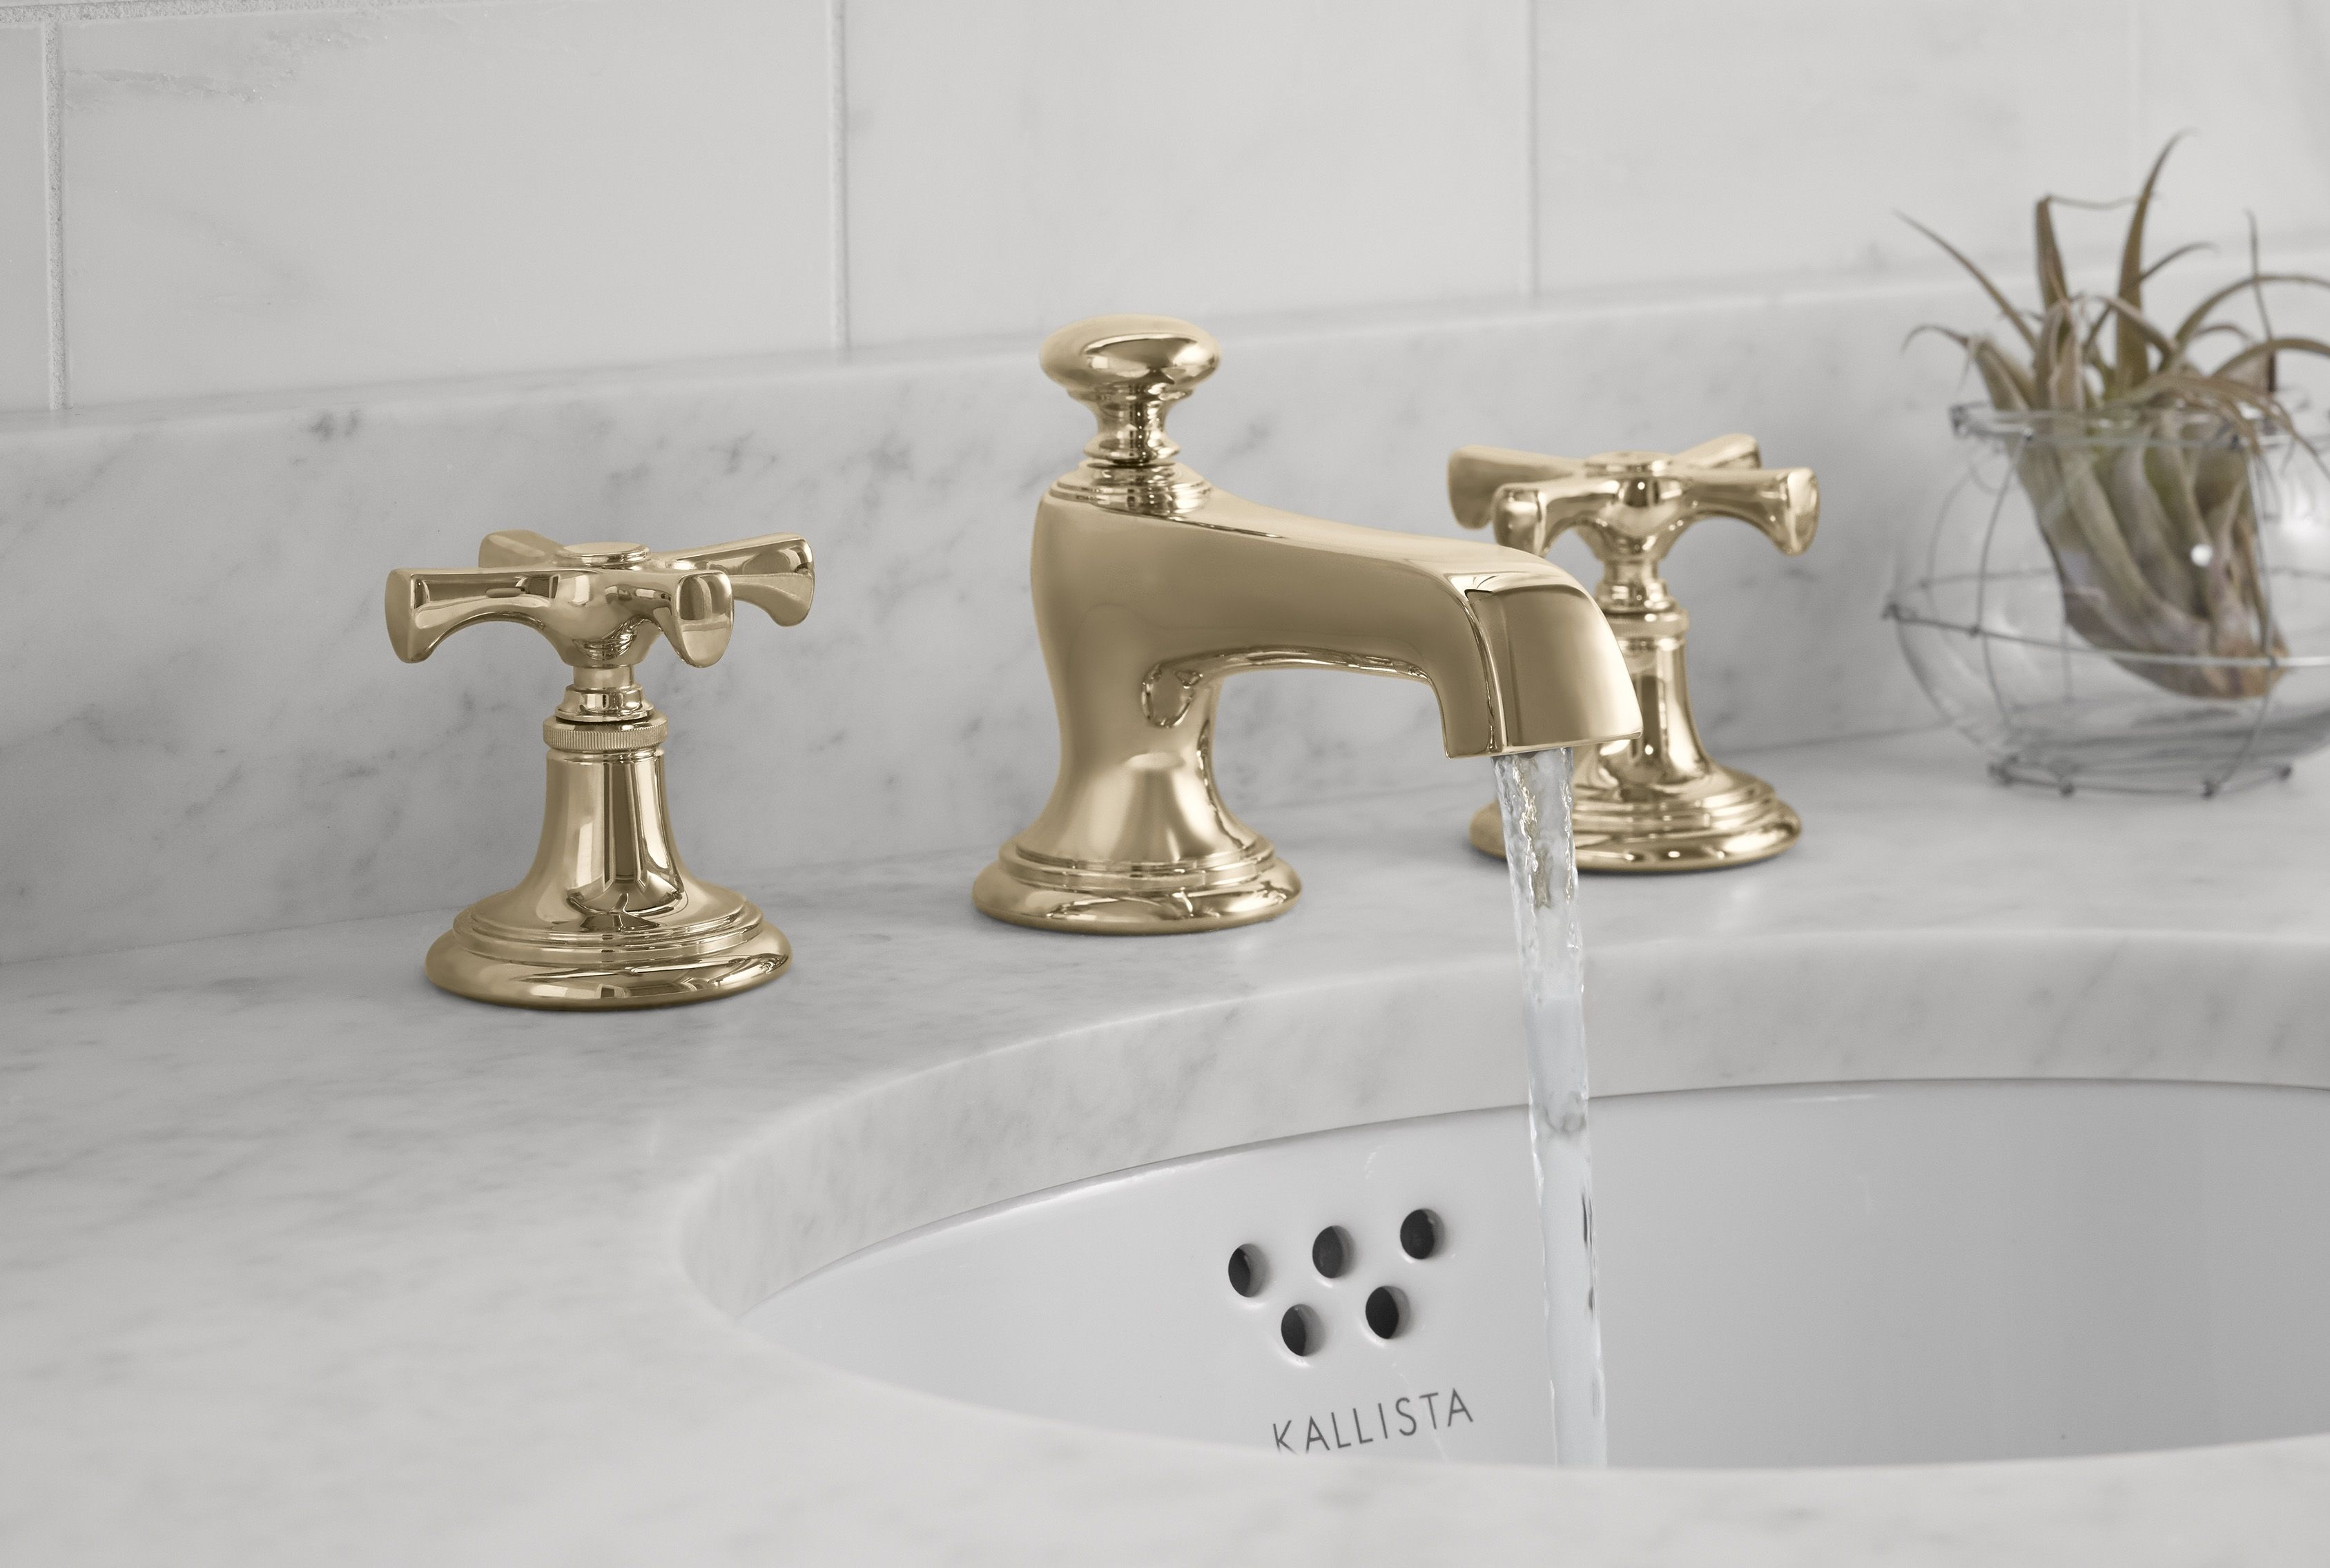 bellis traditional basin faucet set with cross handles in